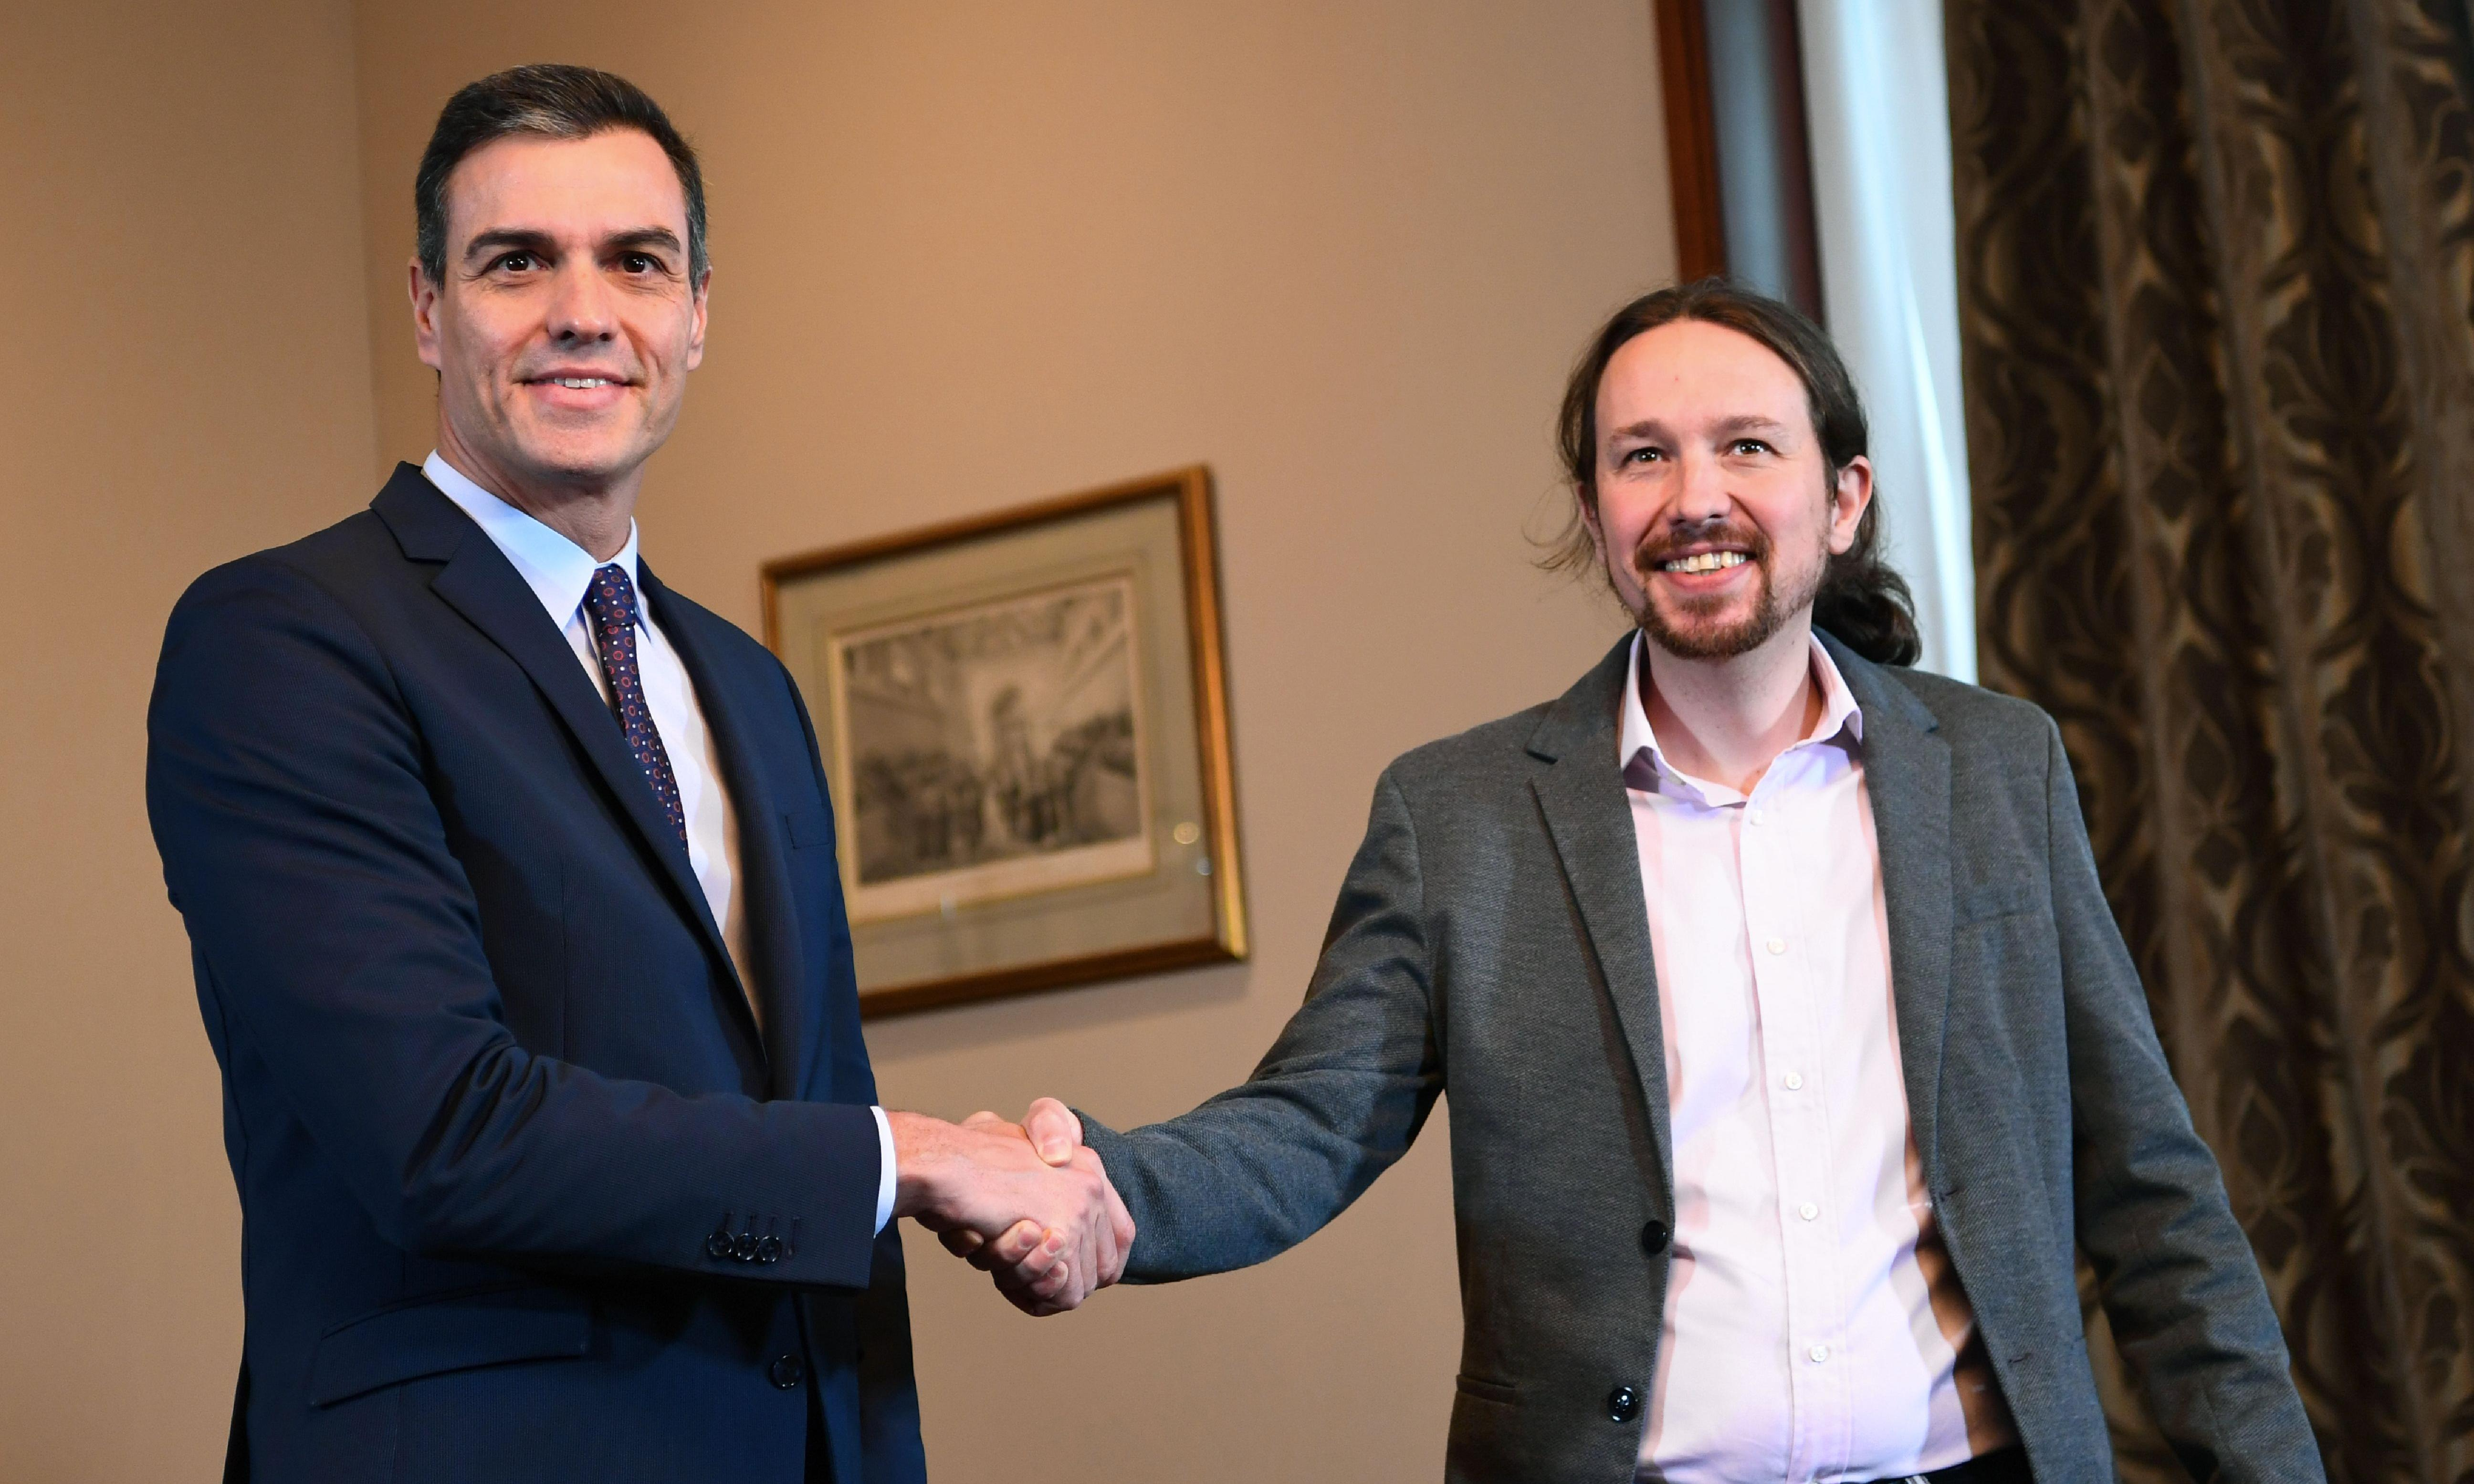 Spain's ruling socialists strike coalition deal with Podemos